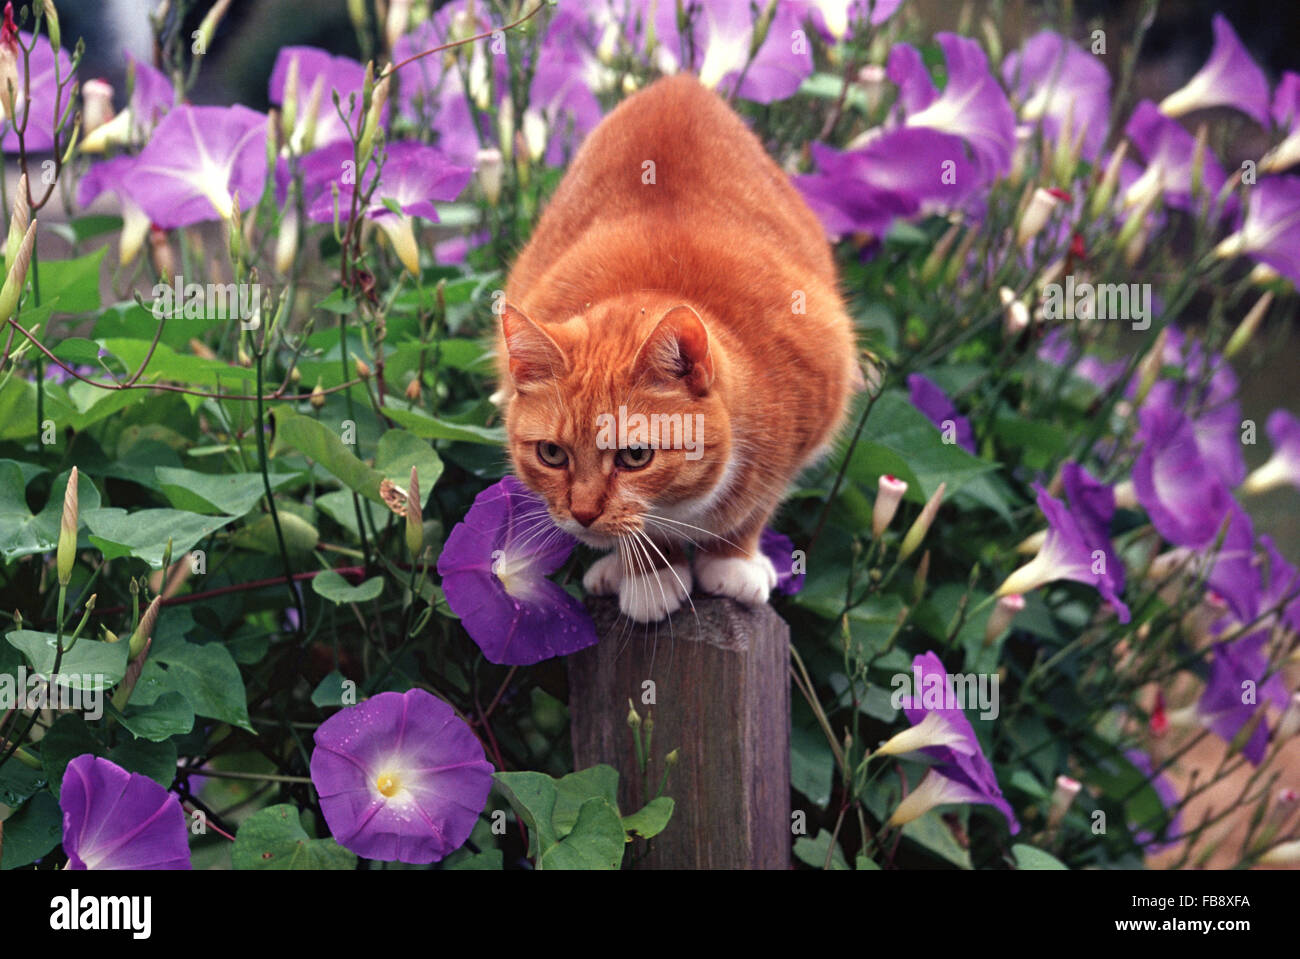 Orange tabby cat crouches on fencepost covered in morning glories - Stock Image